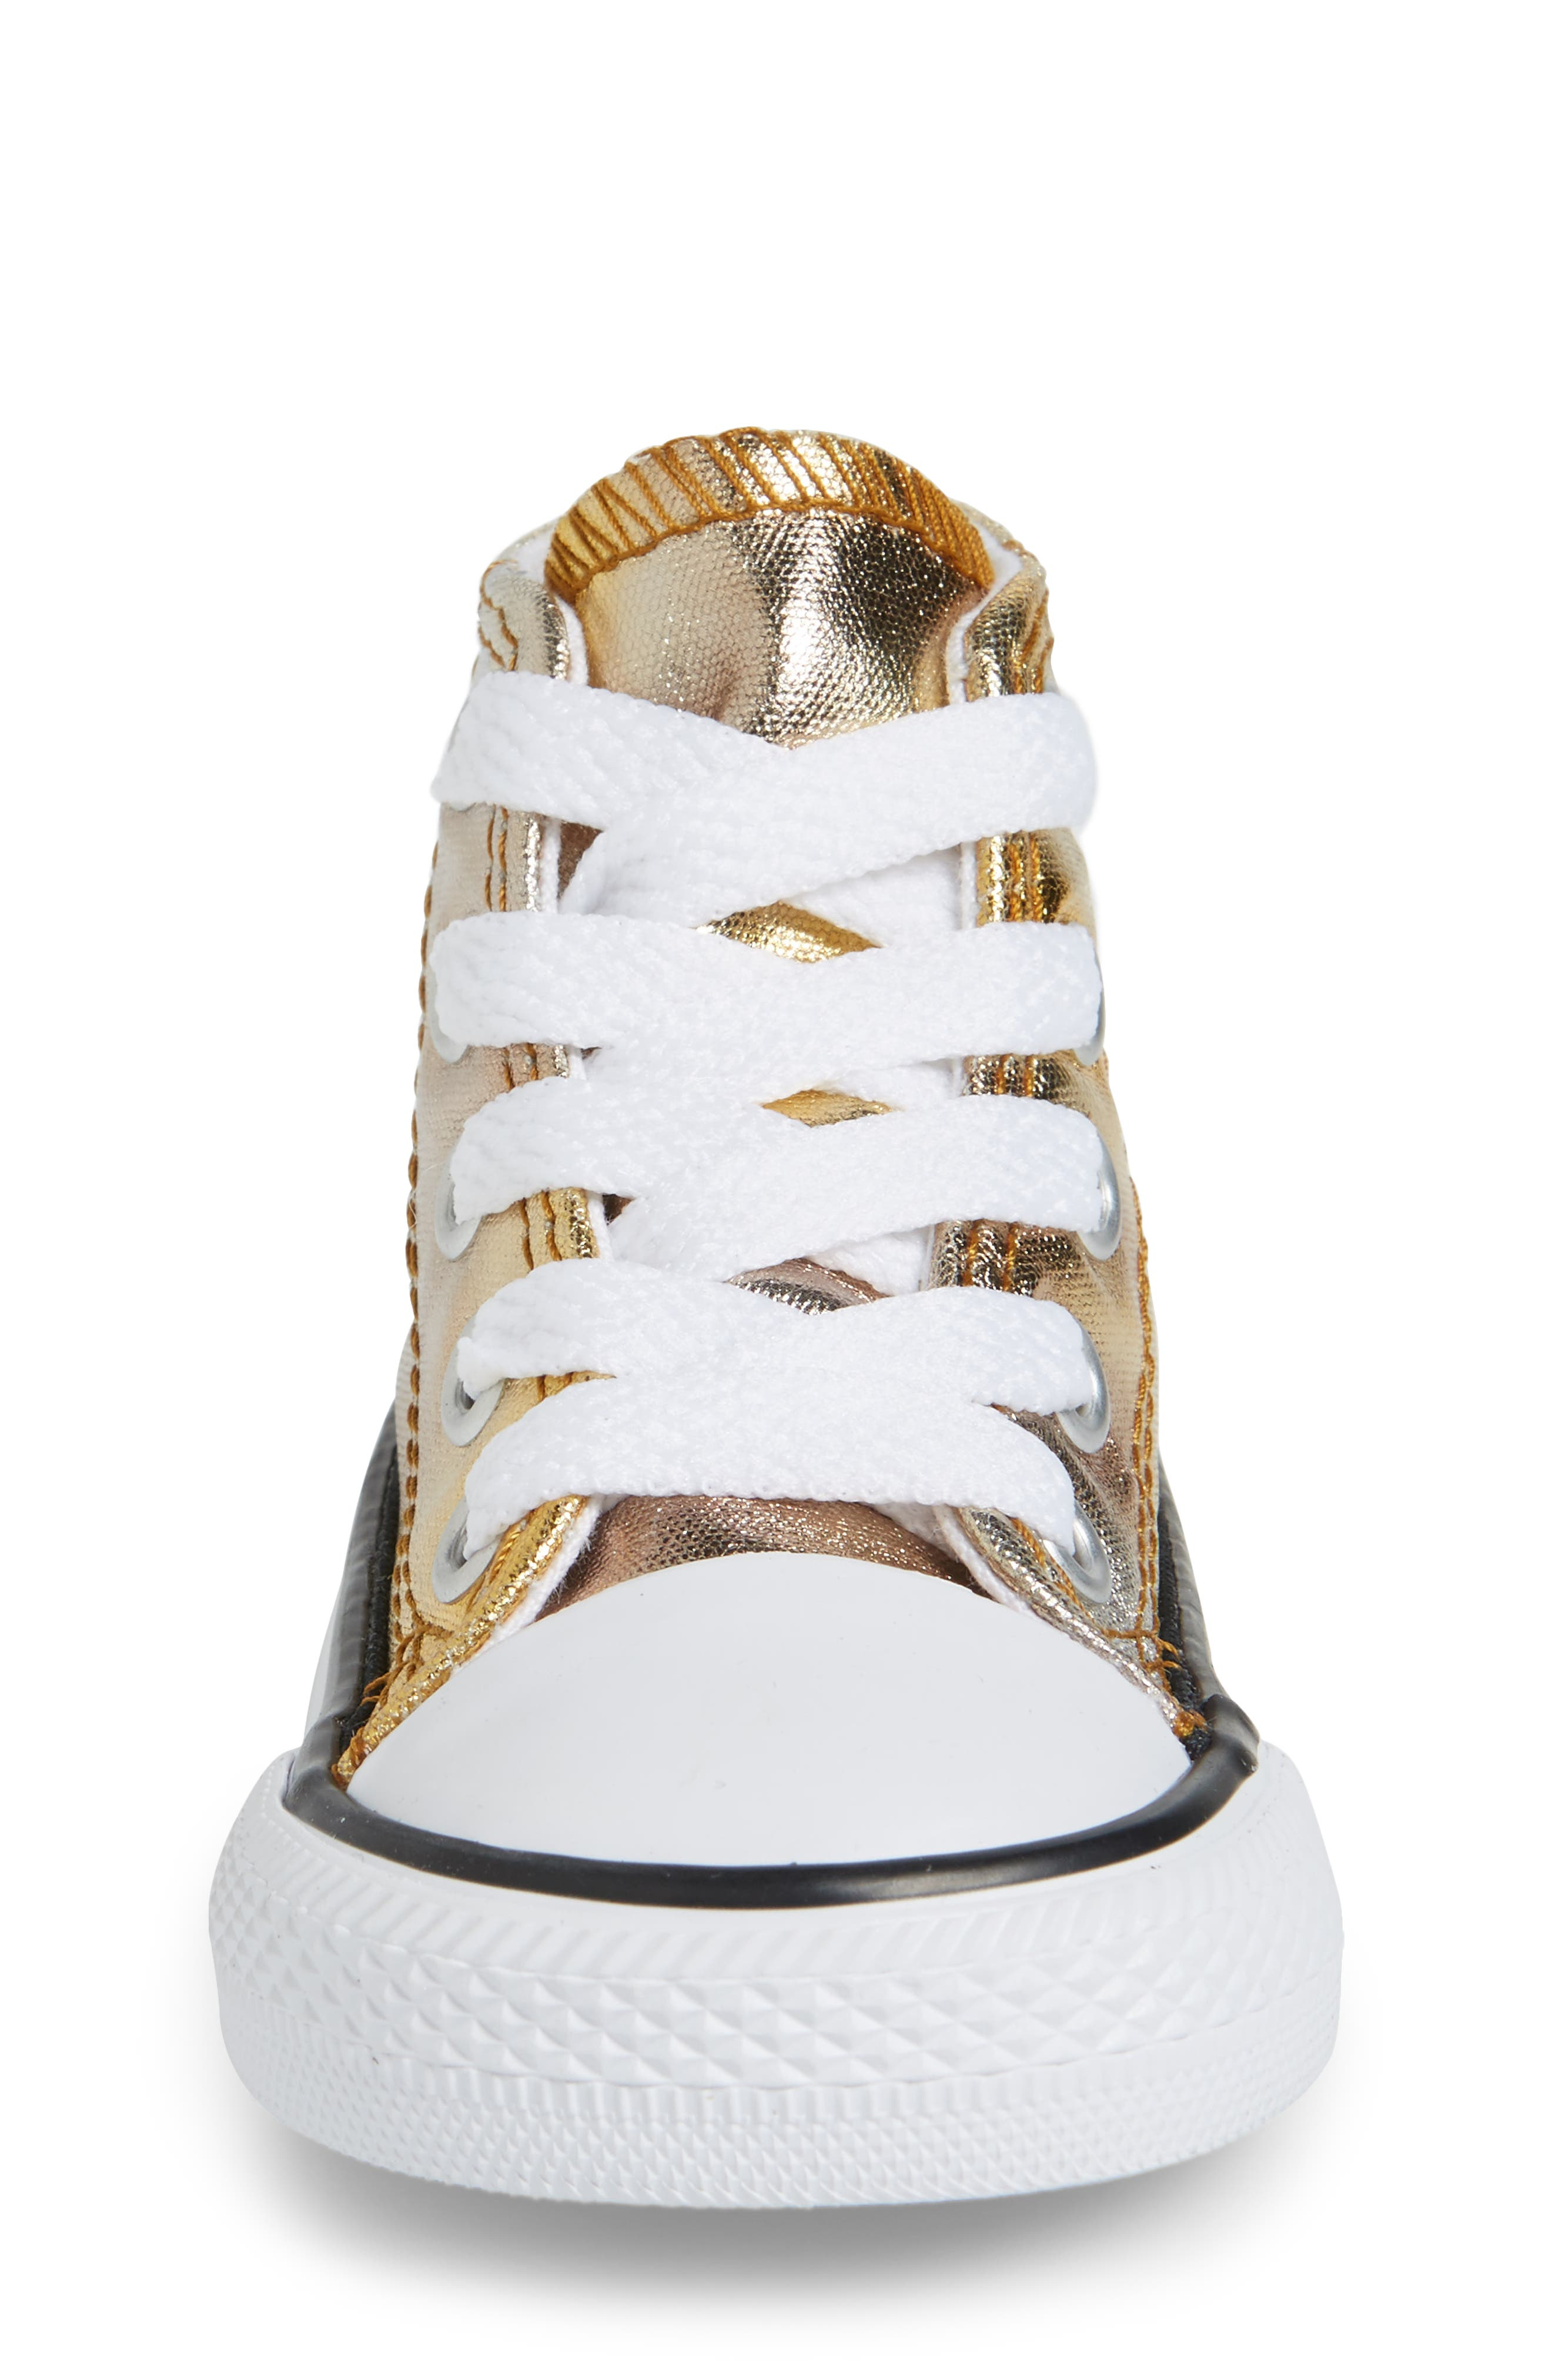 Chuck Taylor<sup>®</sup> All Star<sup>®</sup> Metallic High Top Sneaker,                             Alternate thumbnail 8, color,